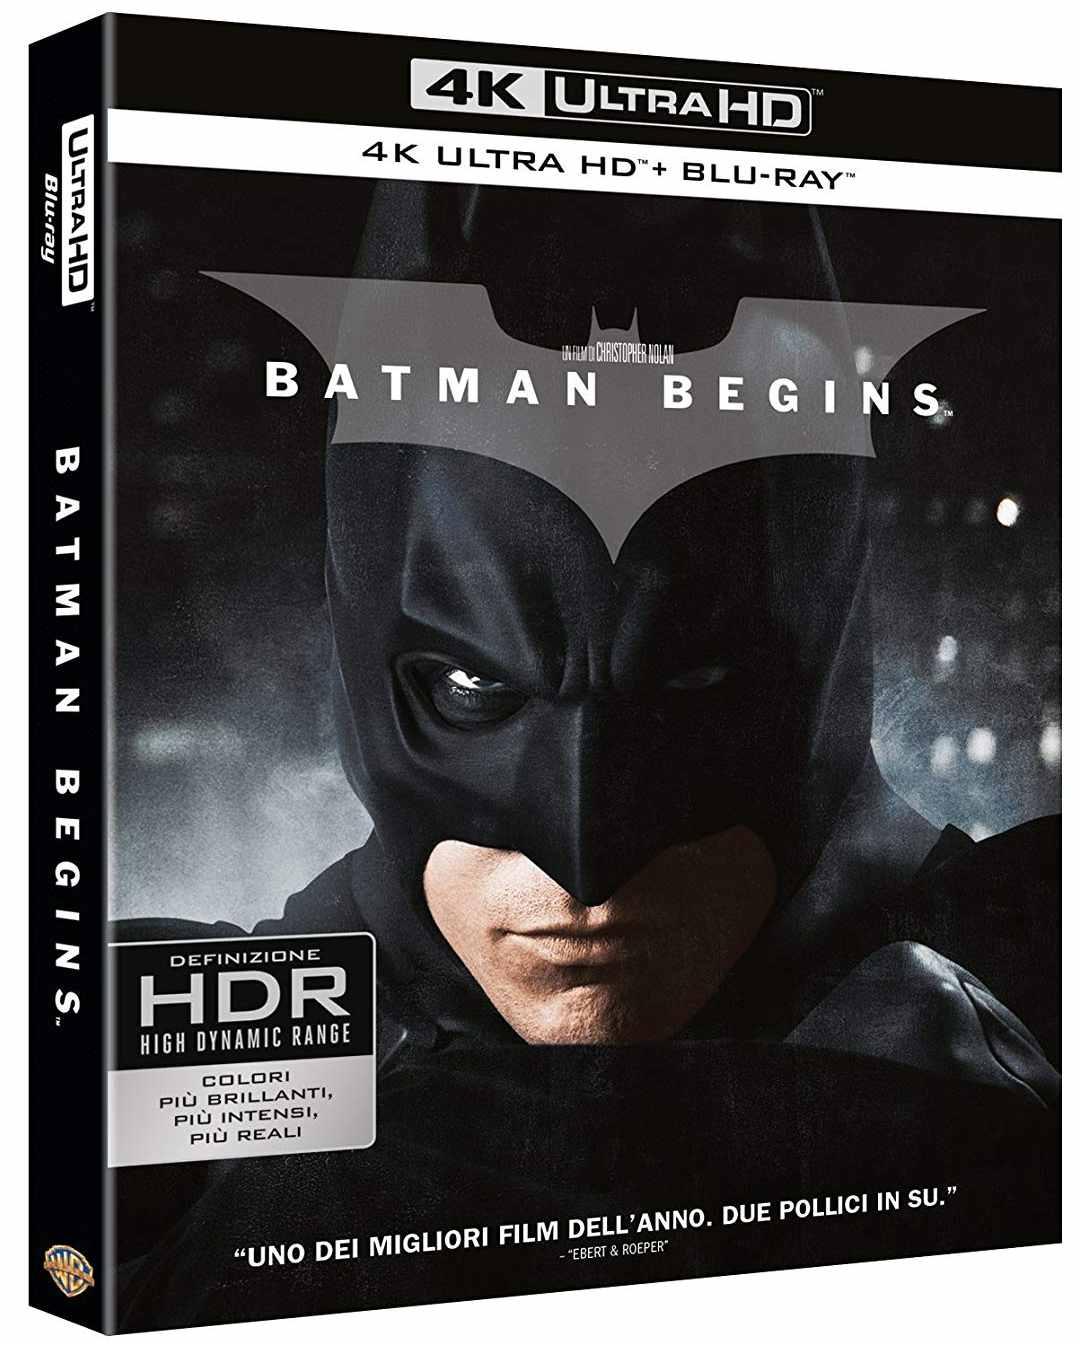 Batman začíná (4K Ultra HD) - UHD Blu-ray